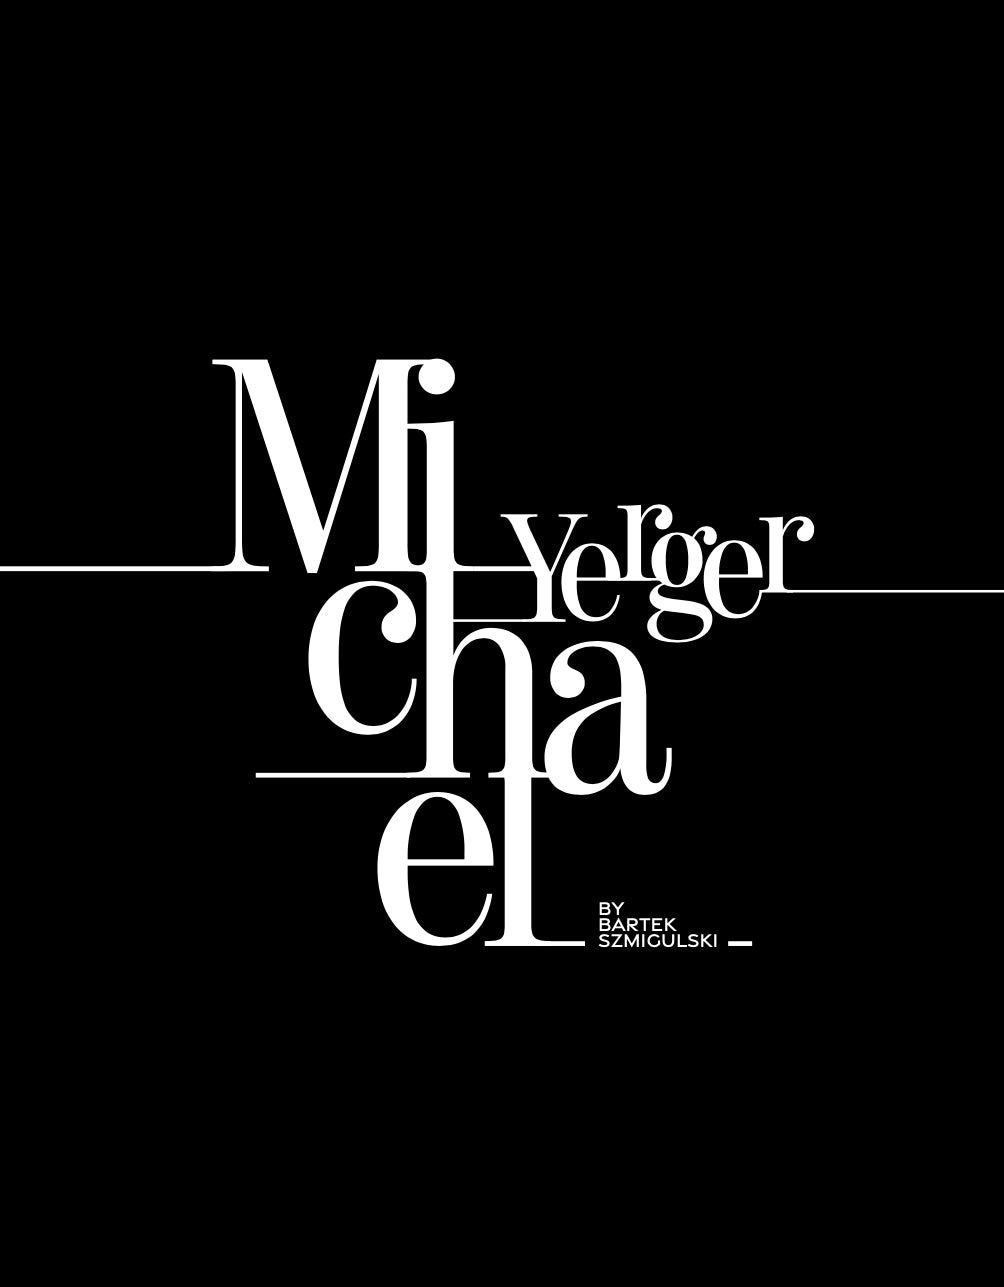 Michael Yerger by Bartek Szmigulski